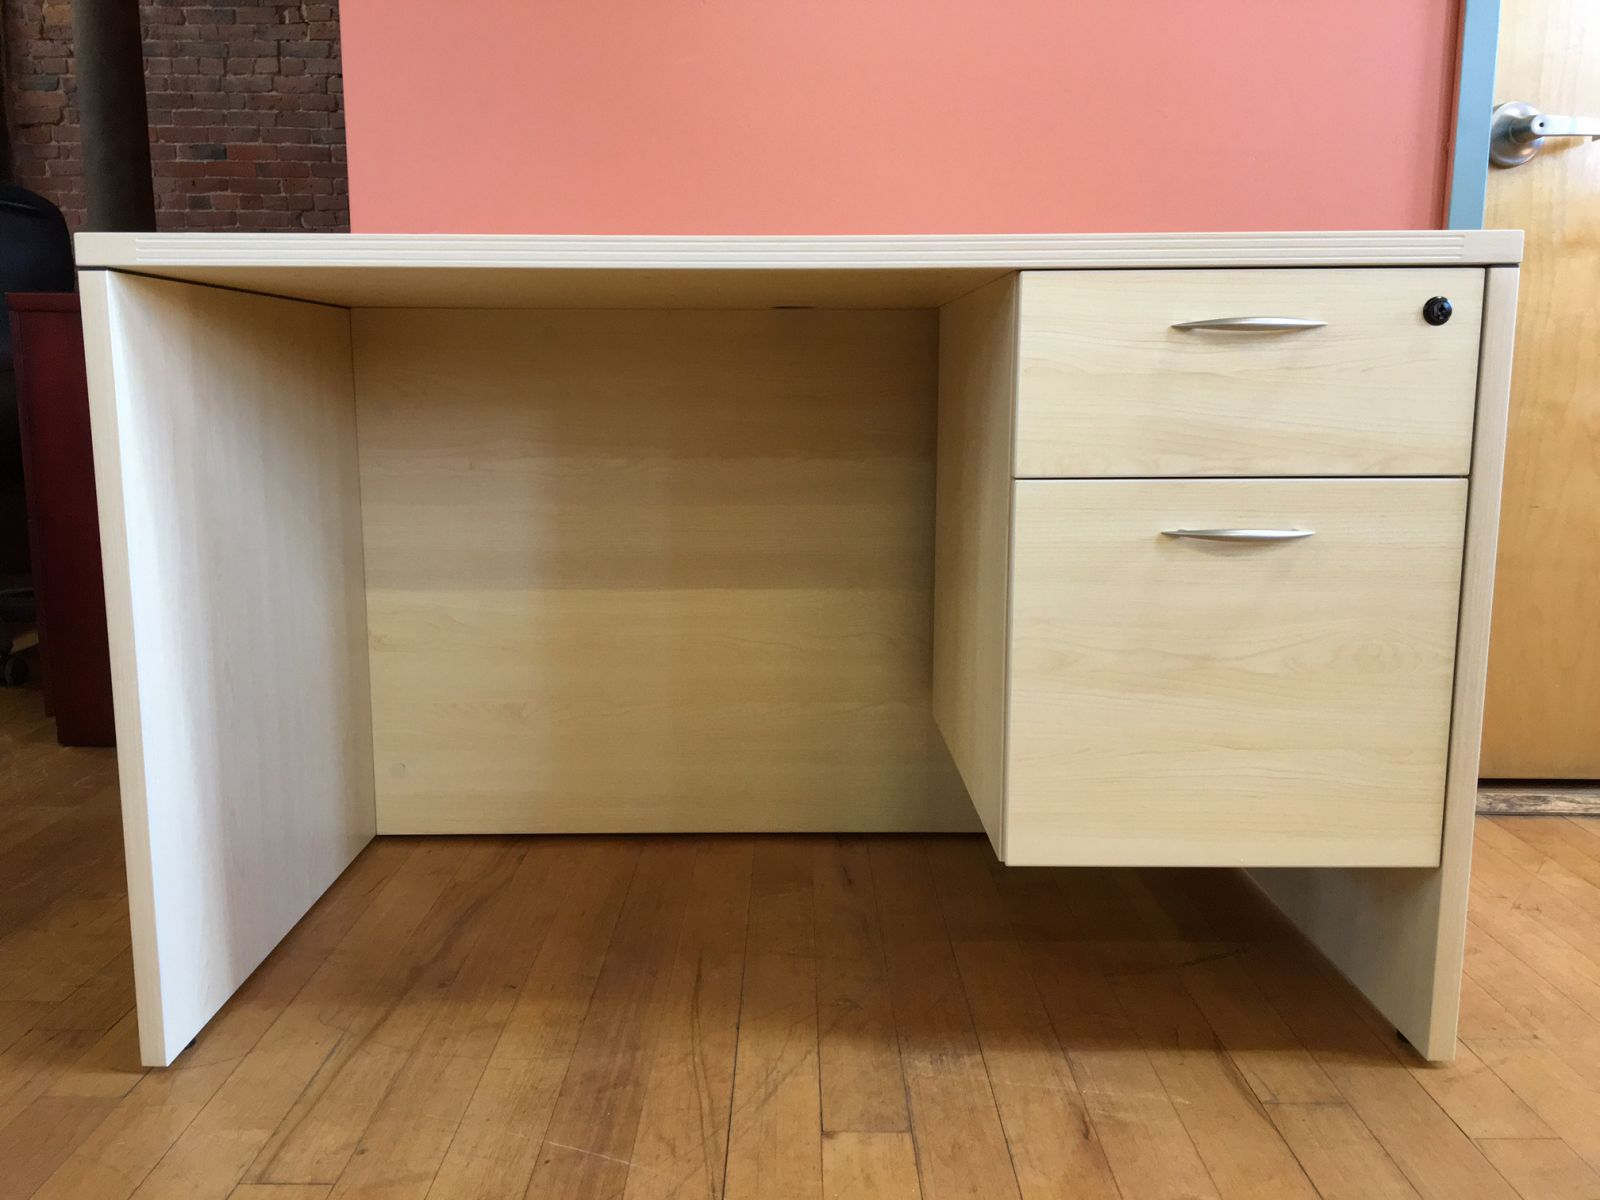 D6073C - New 48 X 30 Maple Desk by Office Star